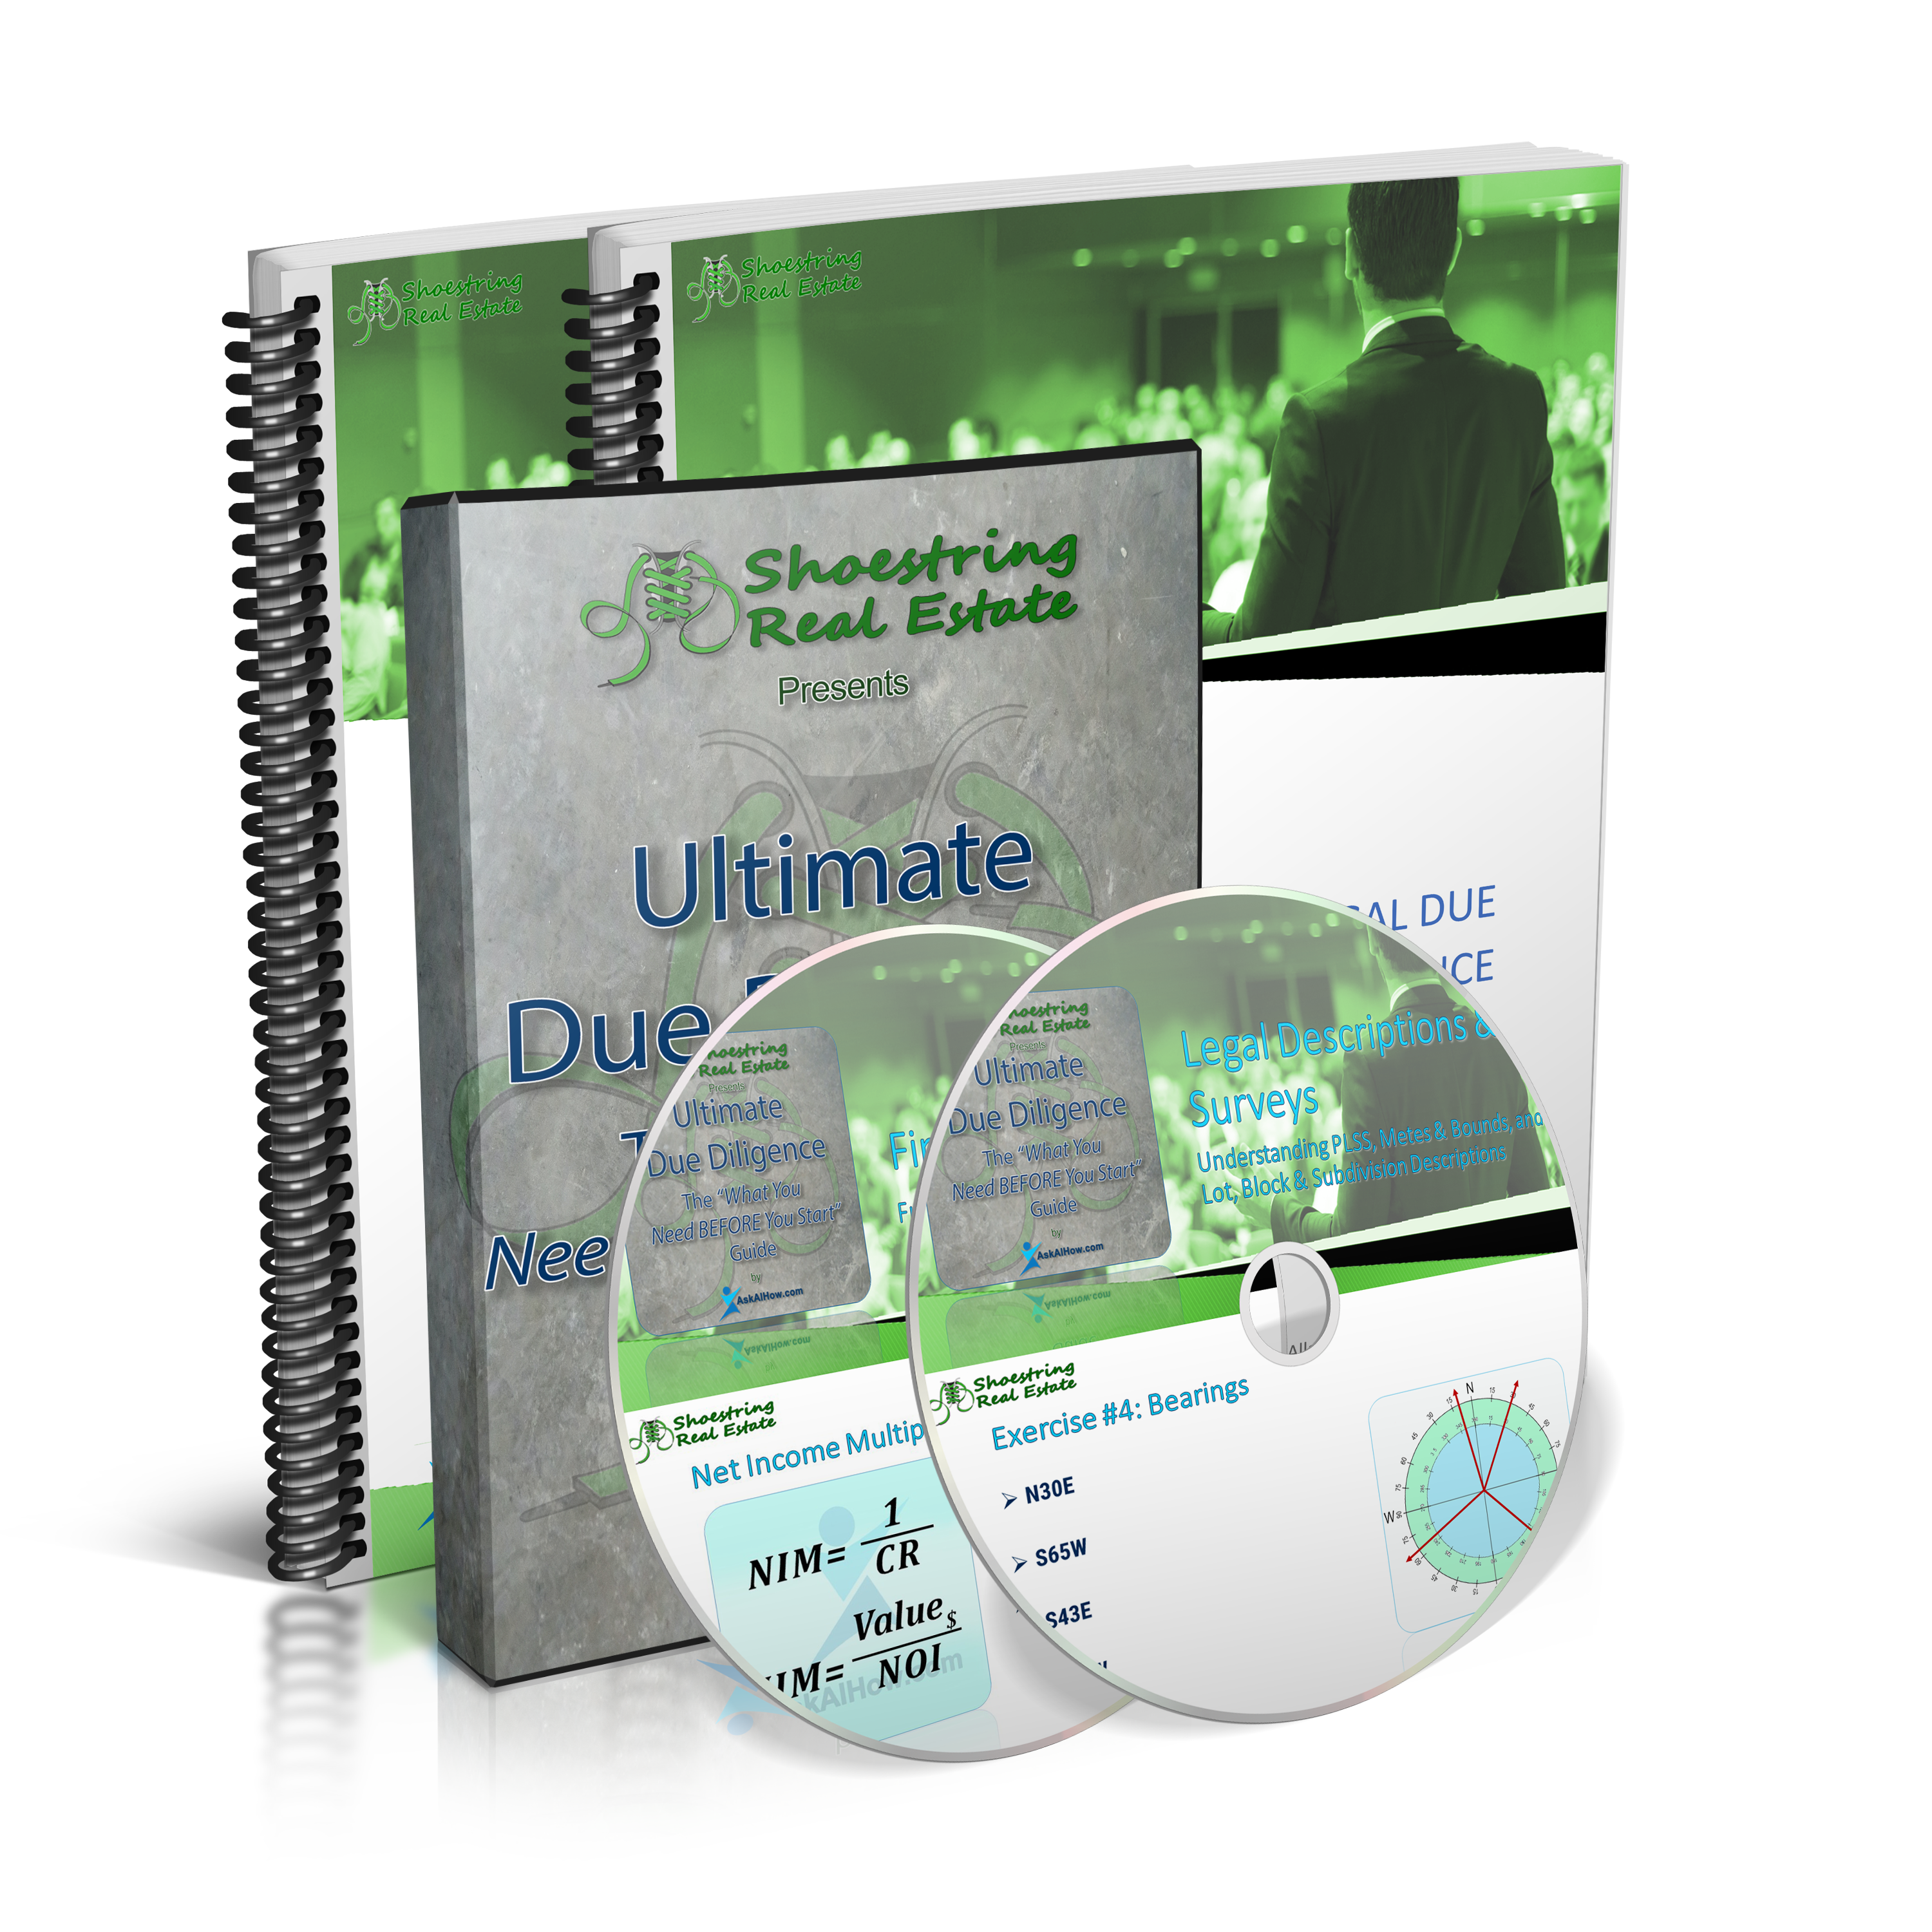 •In Module 5, I go over 19 of the best known formulas for calculating pretty much ANYTHING in the realm of Real Estate.